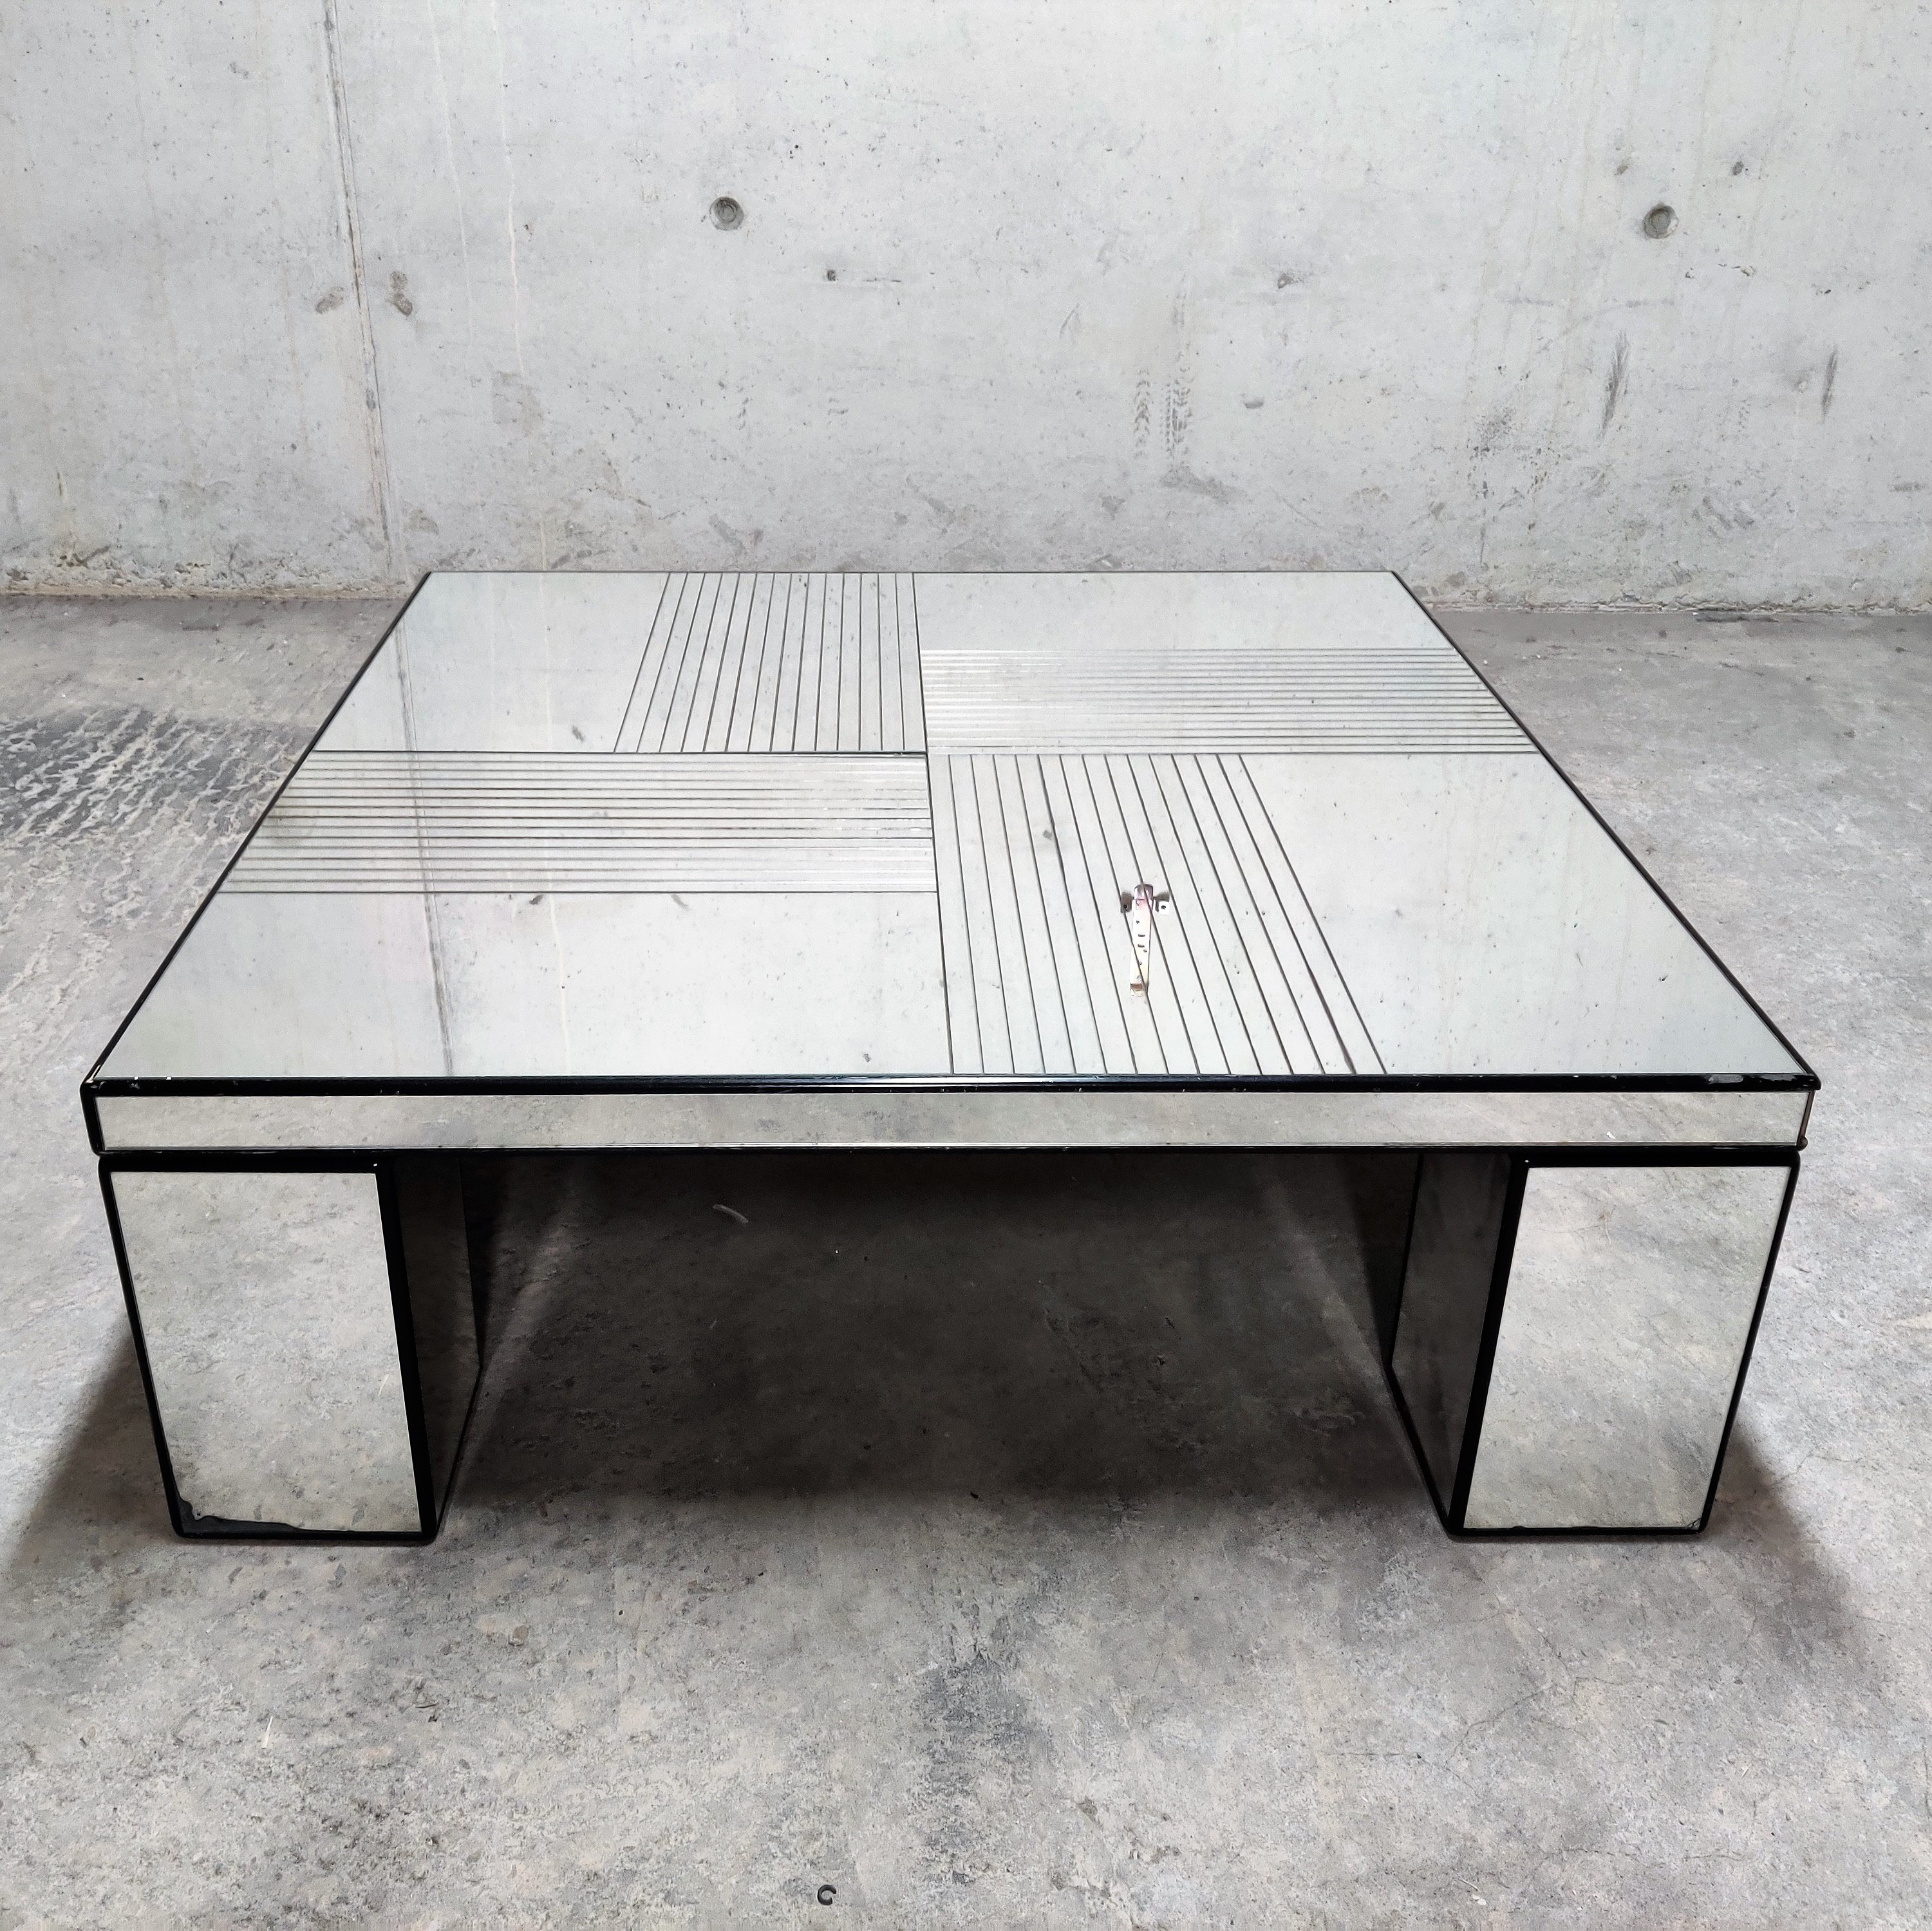 Vintage Mirrored Coffee Table 1970s